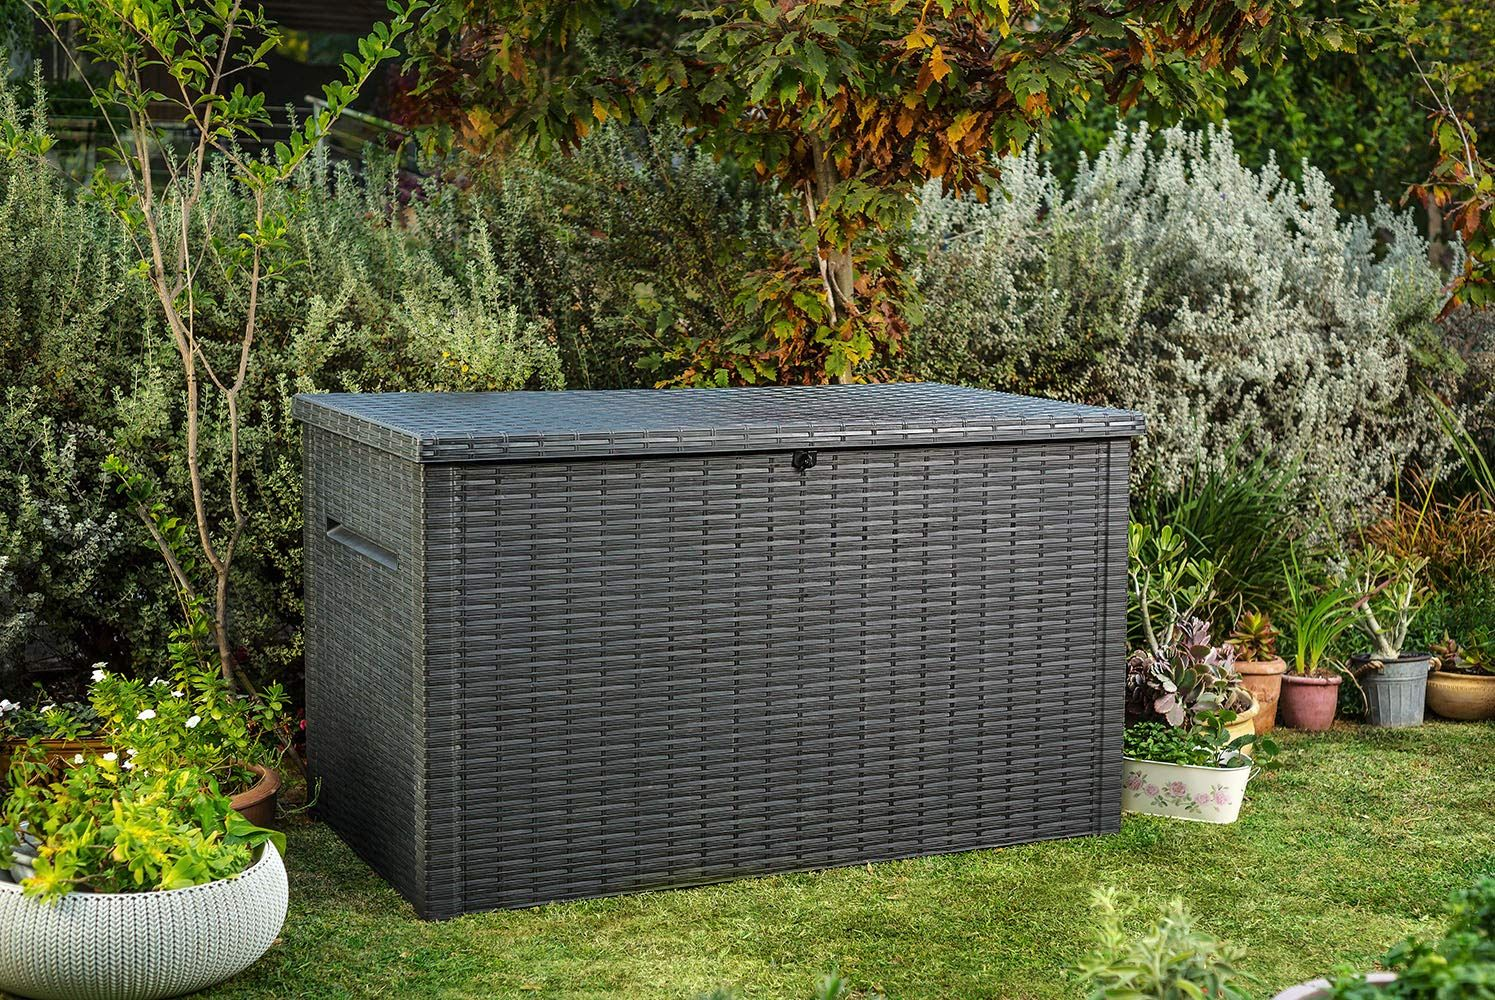 Keter Java Xxl 230 Gallon Outdoor Storage Deck Box Want To Know More Click On The Image It Is An Affiliate Link To Amazon In 2020 Storage Spaces Storage Deck Box